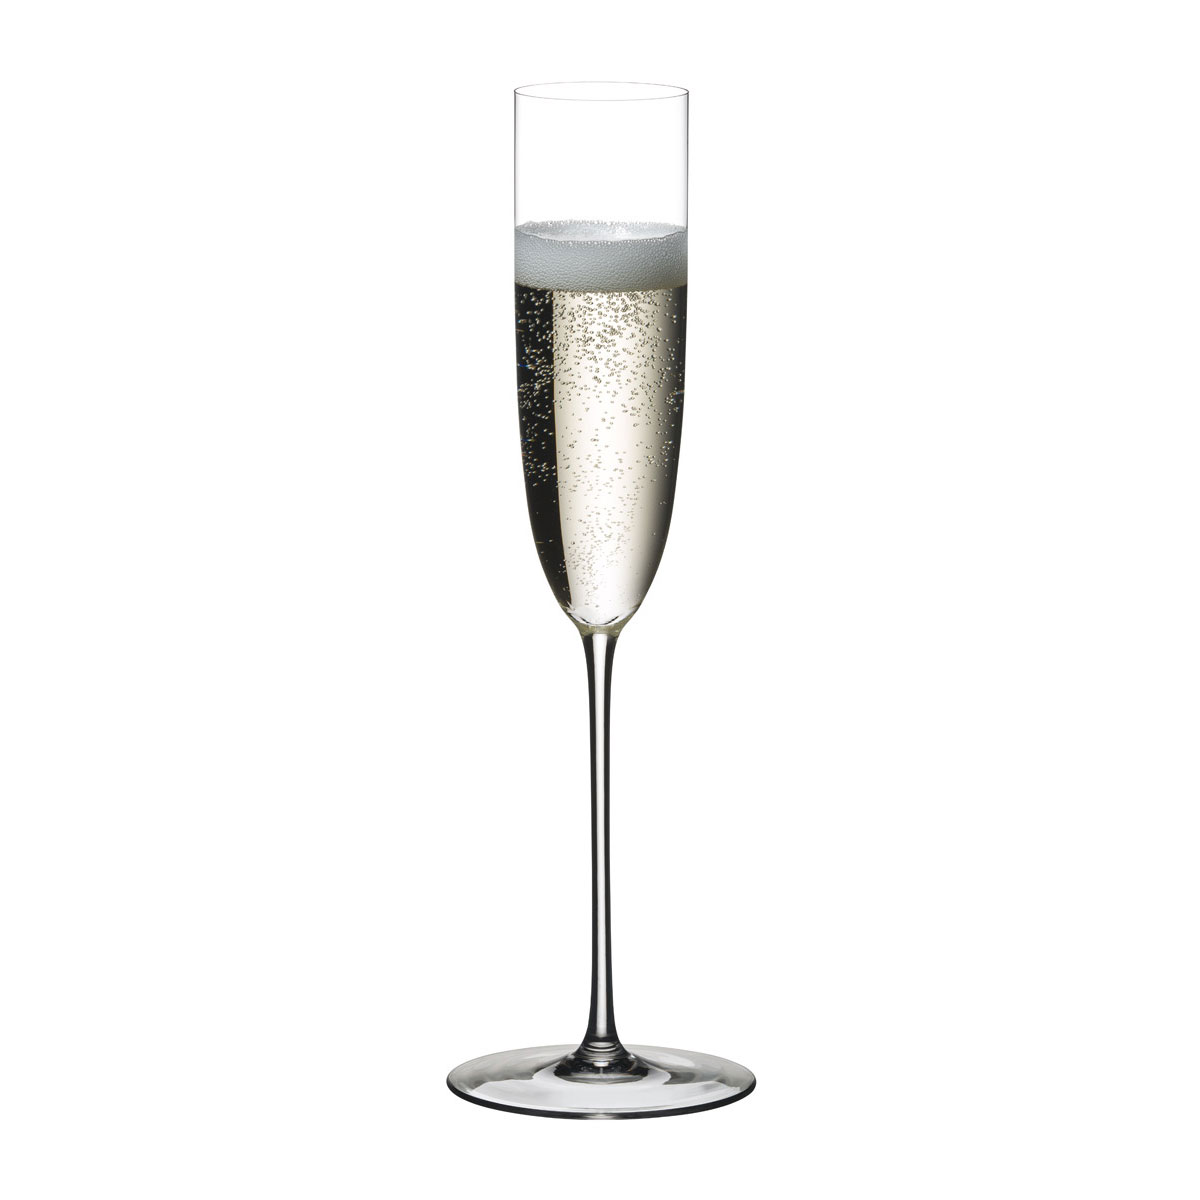 Riedel Sommeliers, Hand Made, Superleggero Champagne Flute Crystal Glass, Single